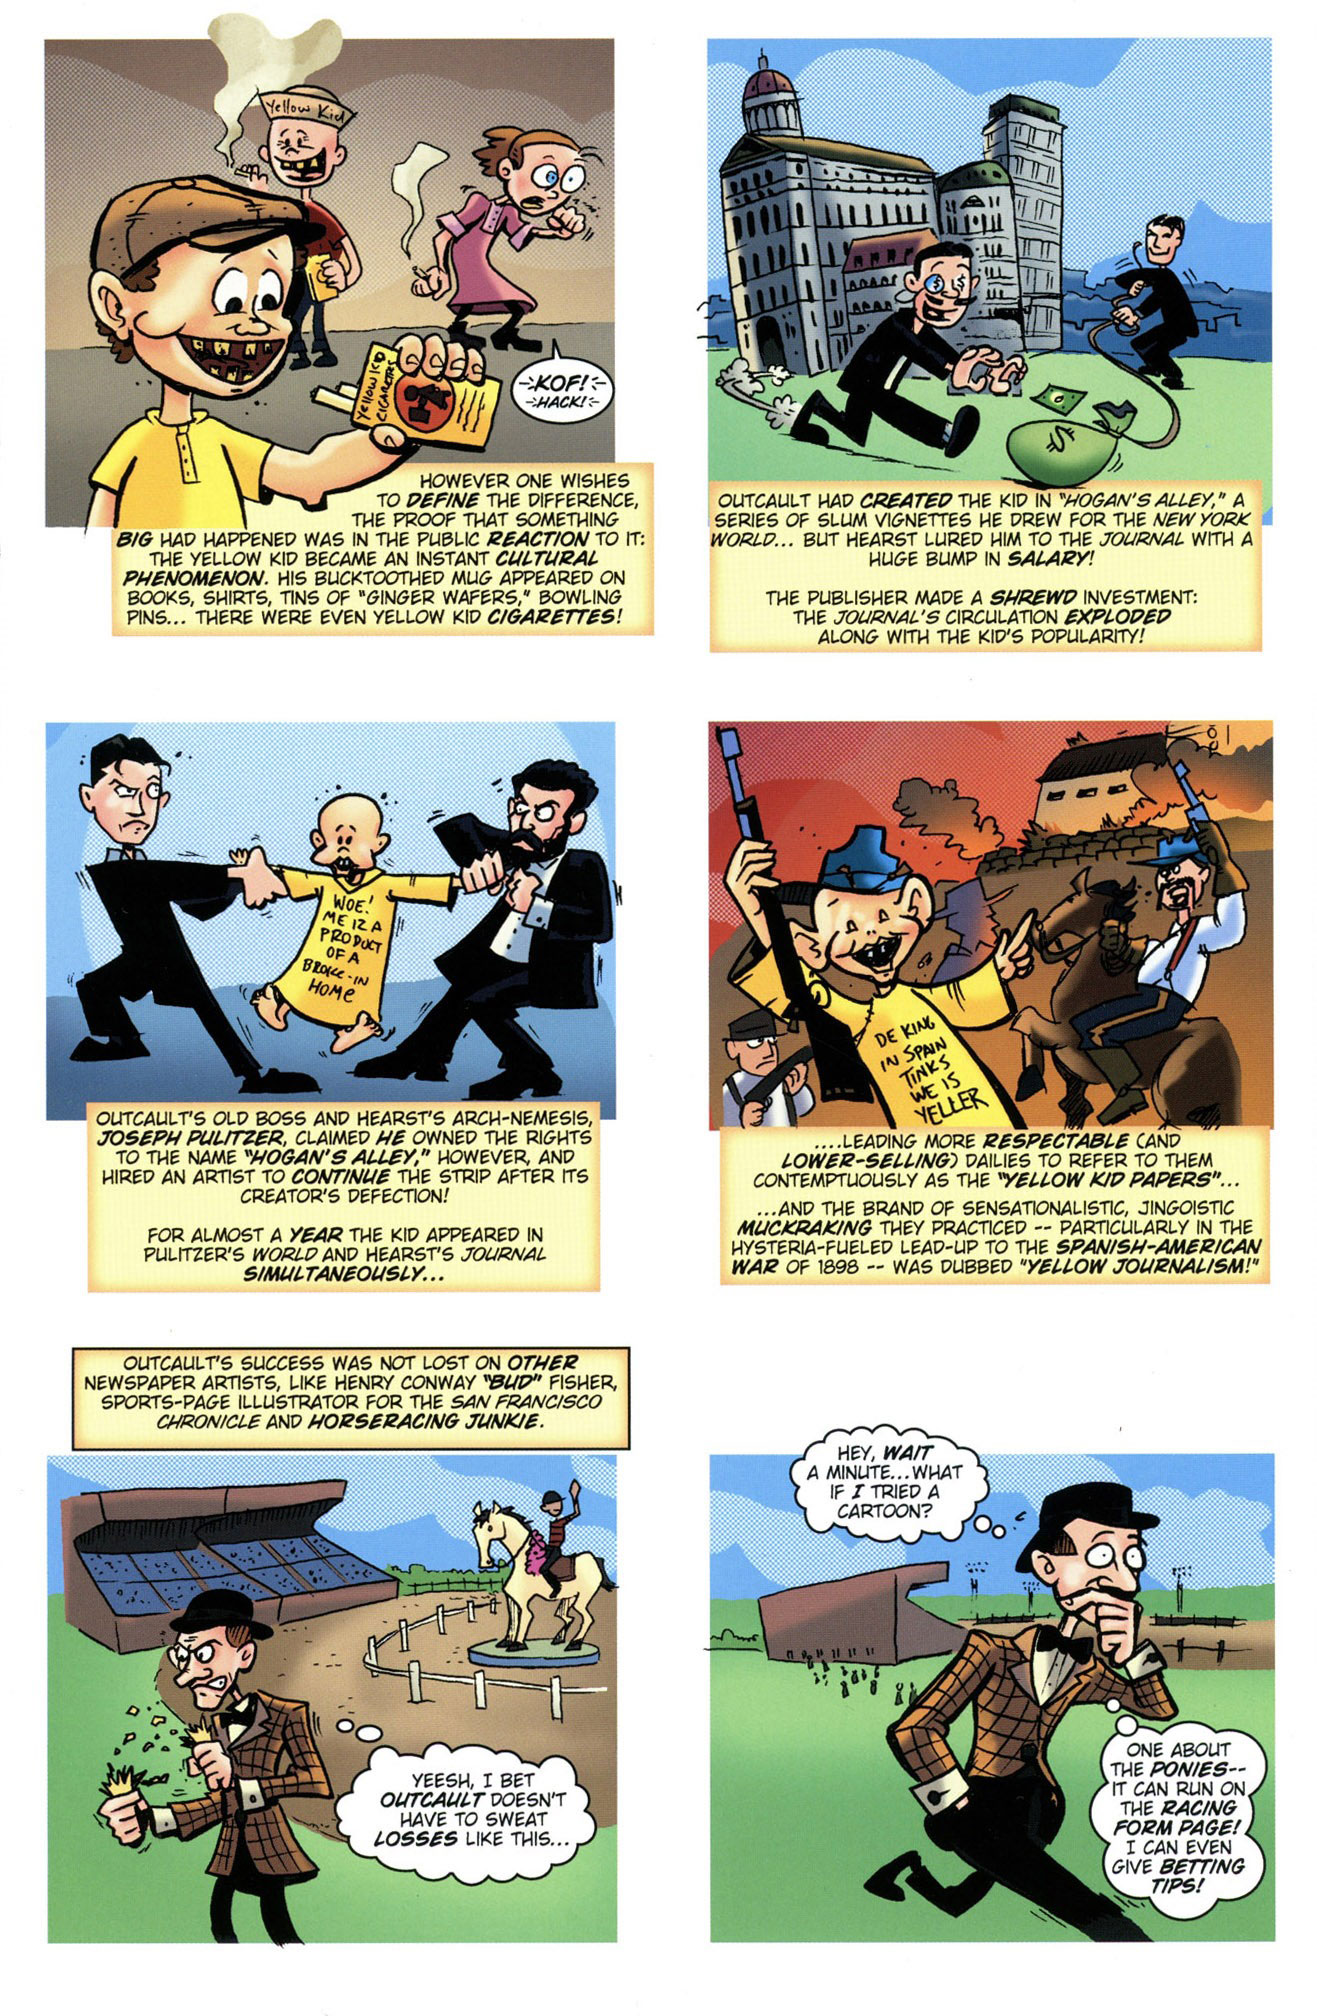 Comic Book History of Comics v1